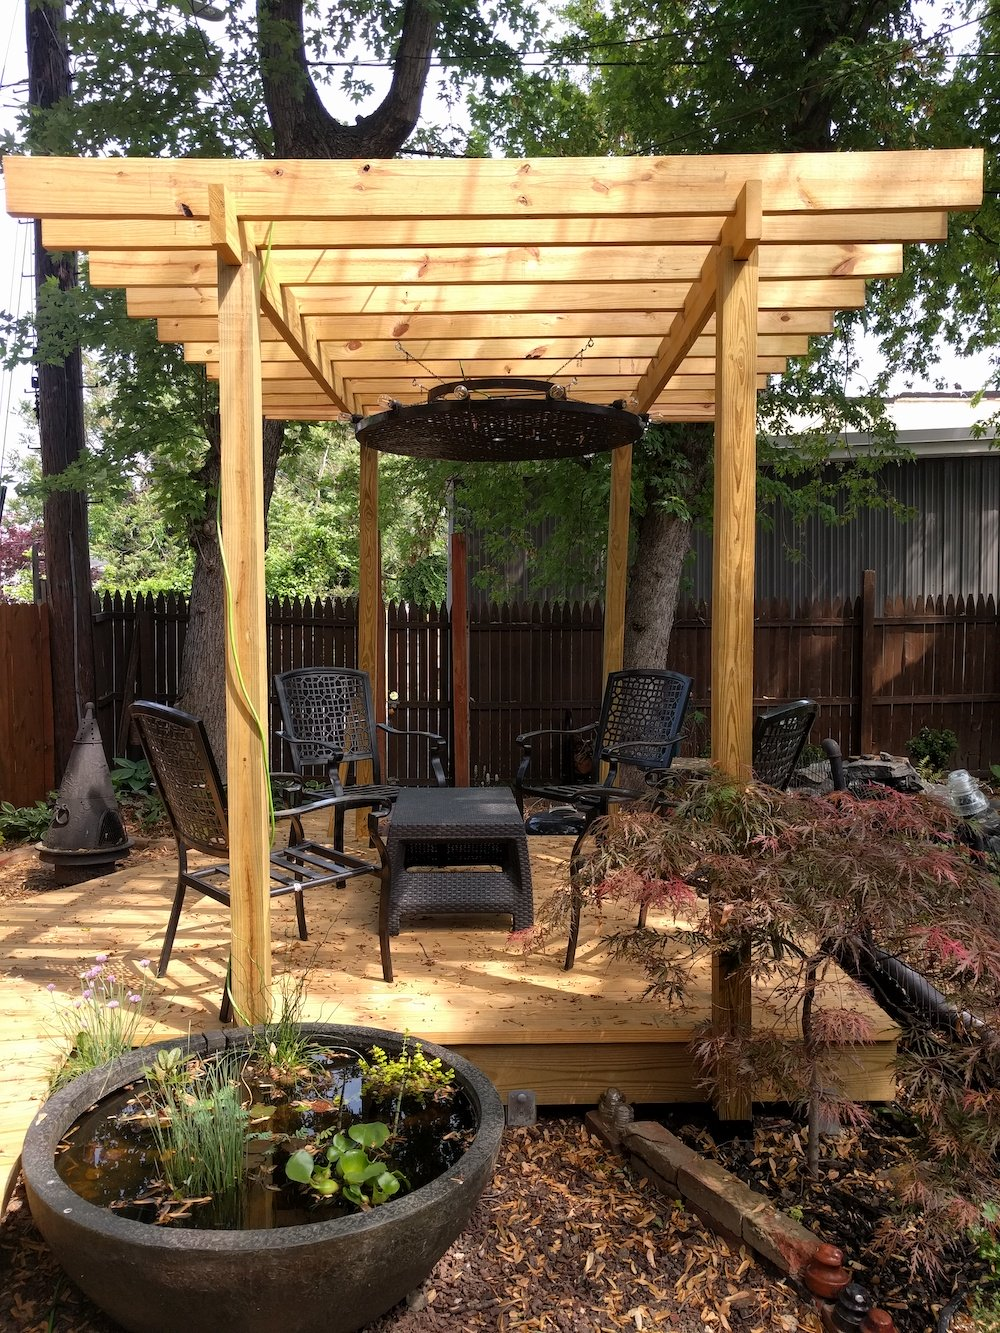 Copyright image: modern pergola with central hanging light feature.